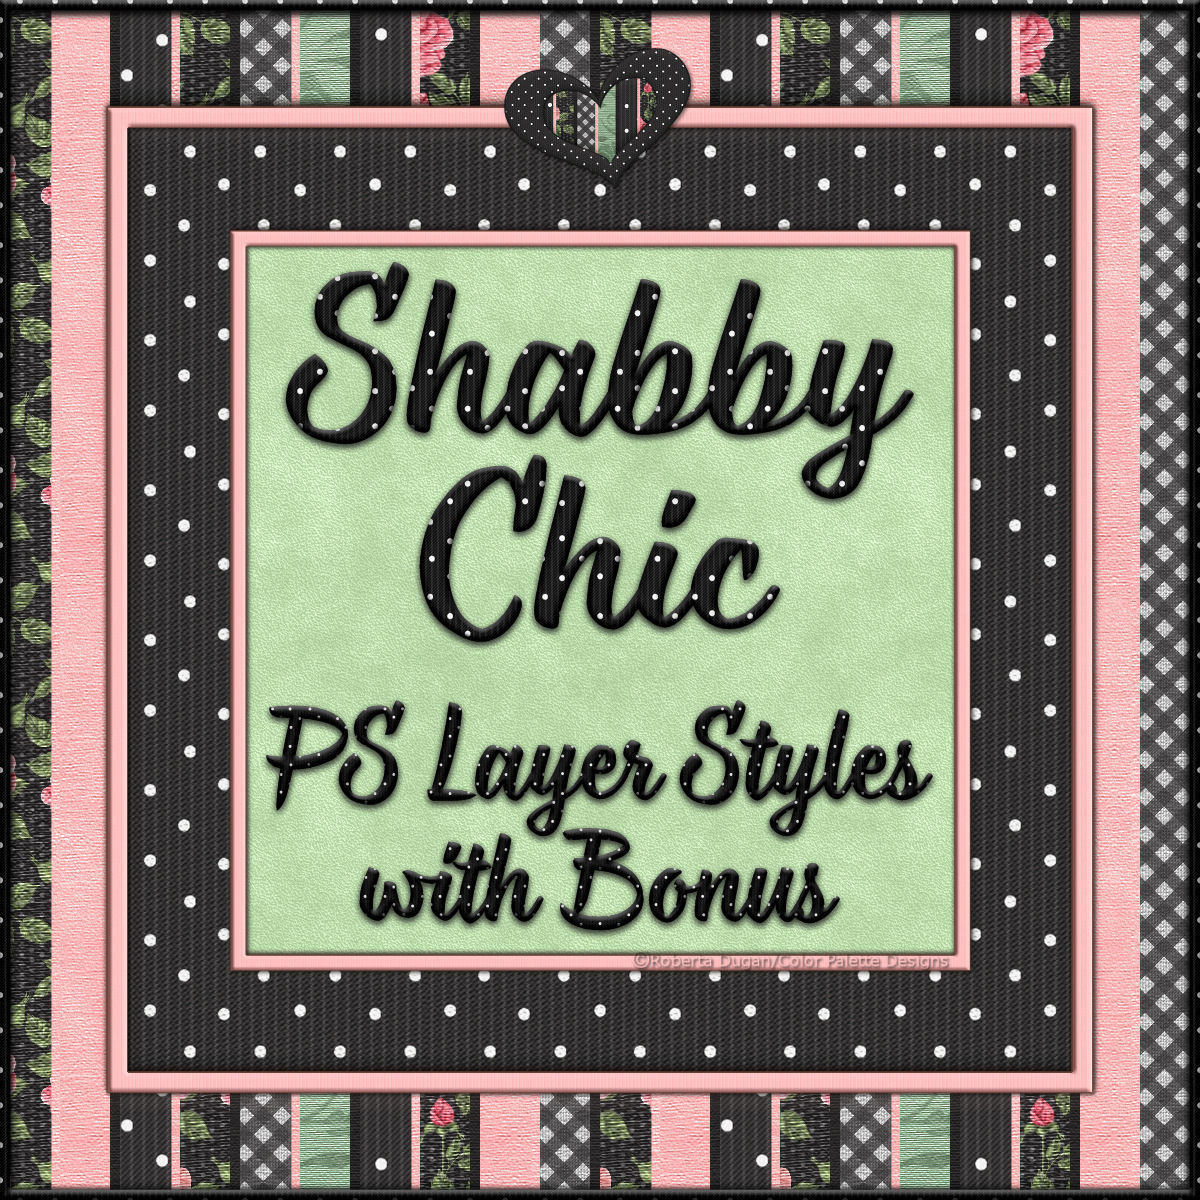 Shabby Chic PS Layer Styles